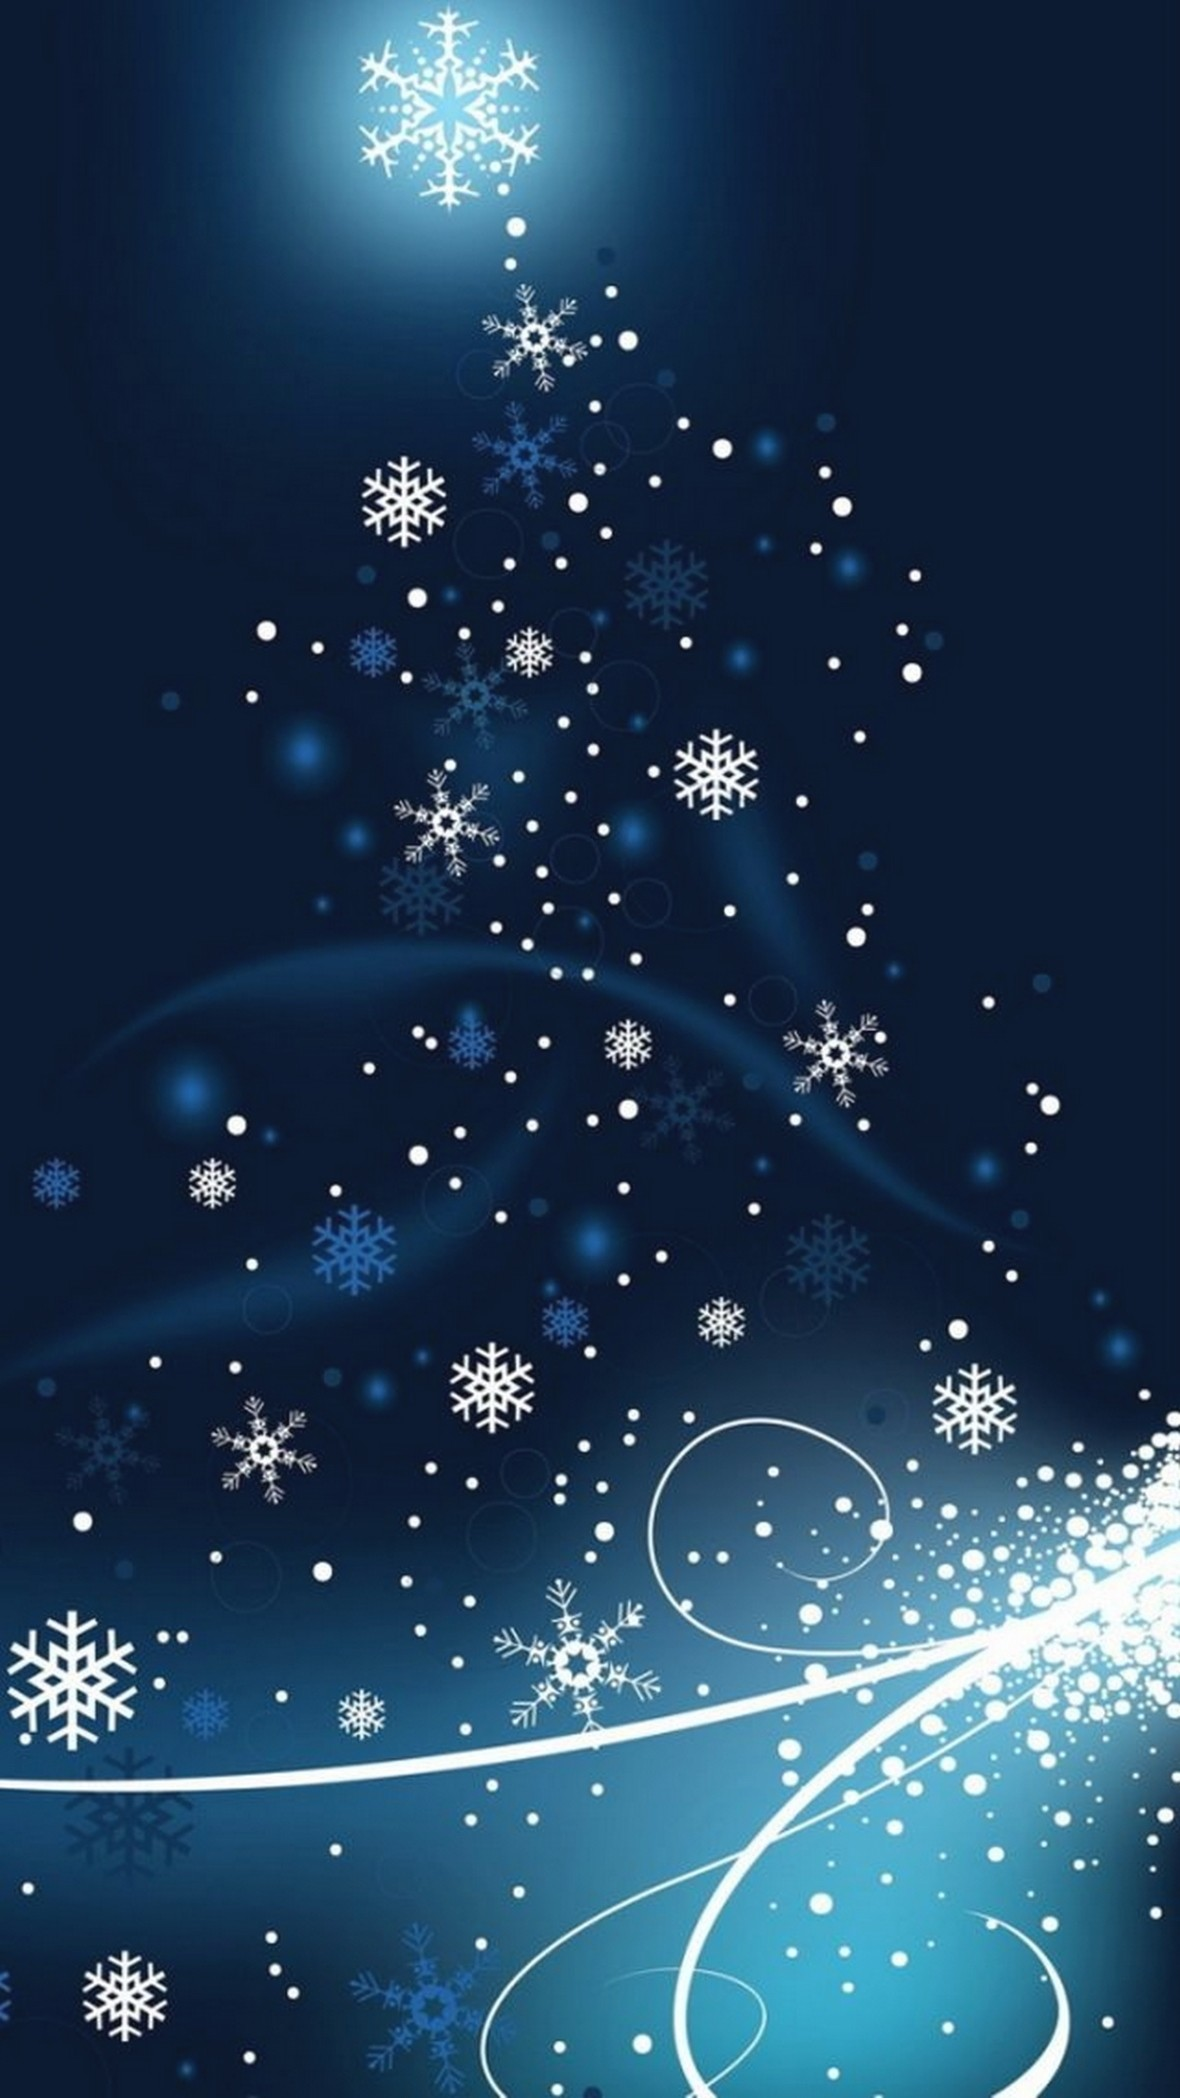 30 Christmas Wallpapers For Iphones in Iphone Wallpaper Hd Christmas